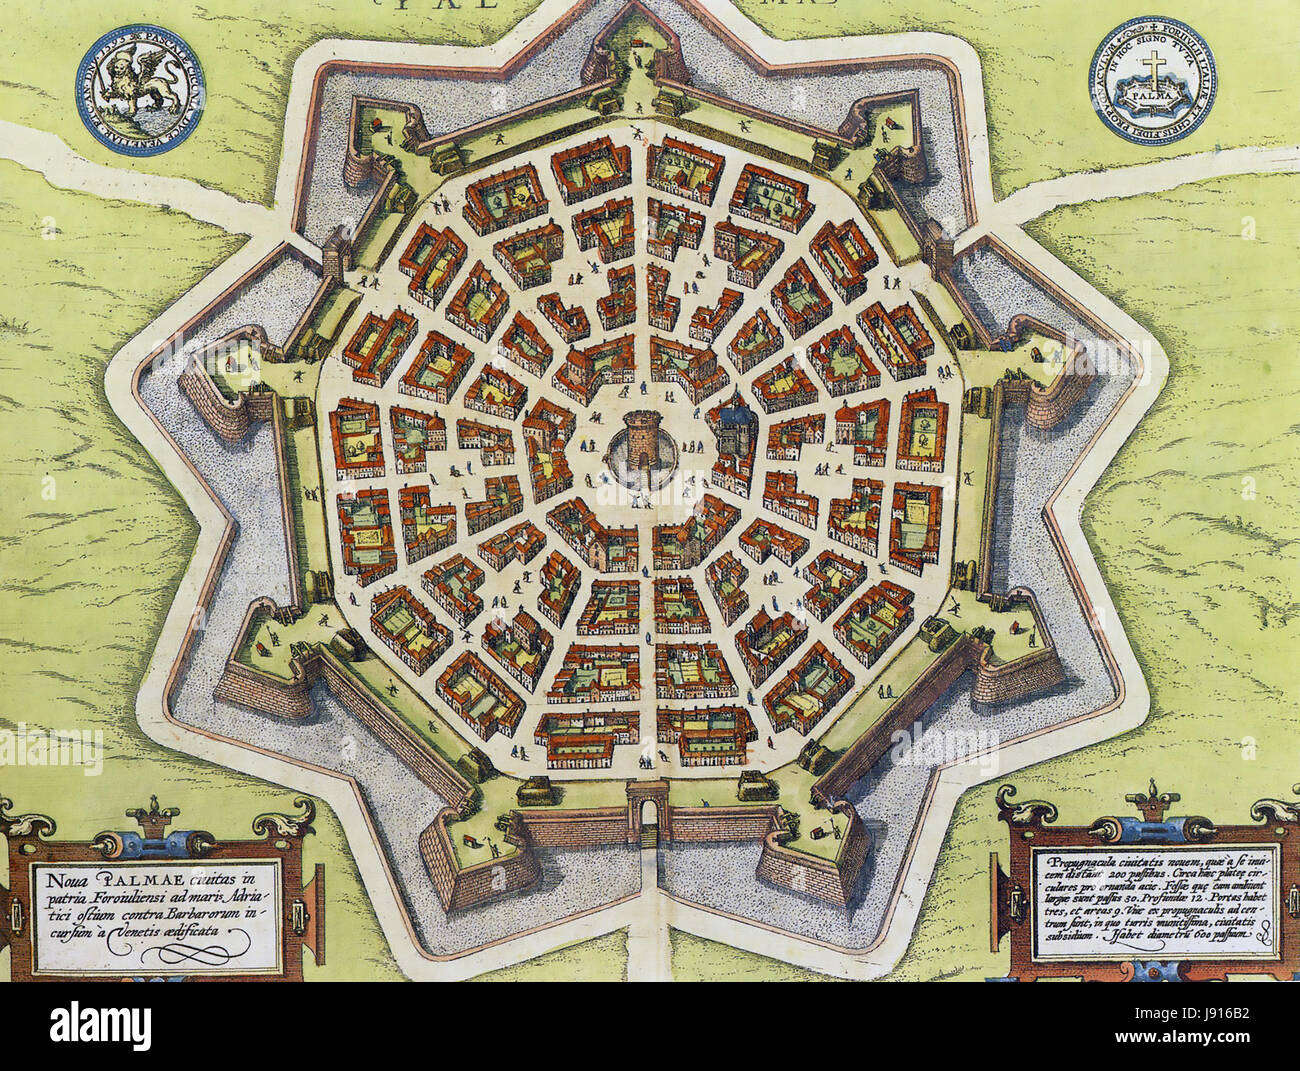 Map Of North East Italy.Palmanova North East Italy A 17th Century Map Showing The Stock